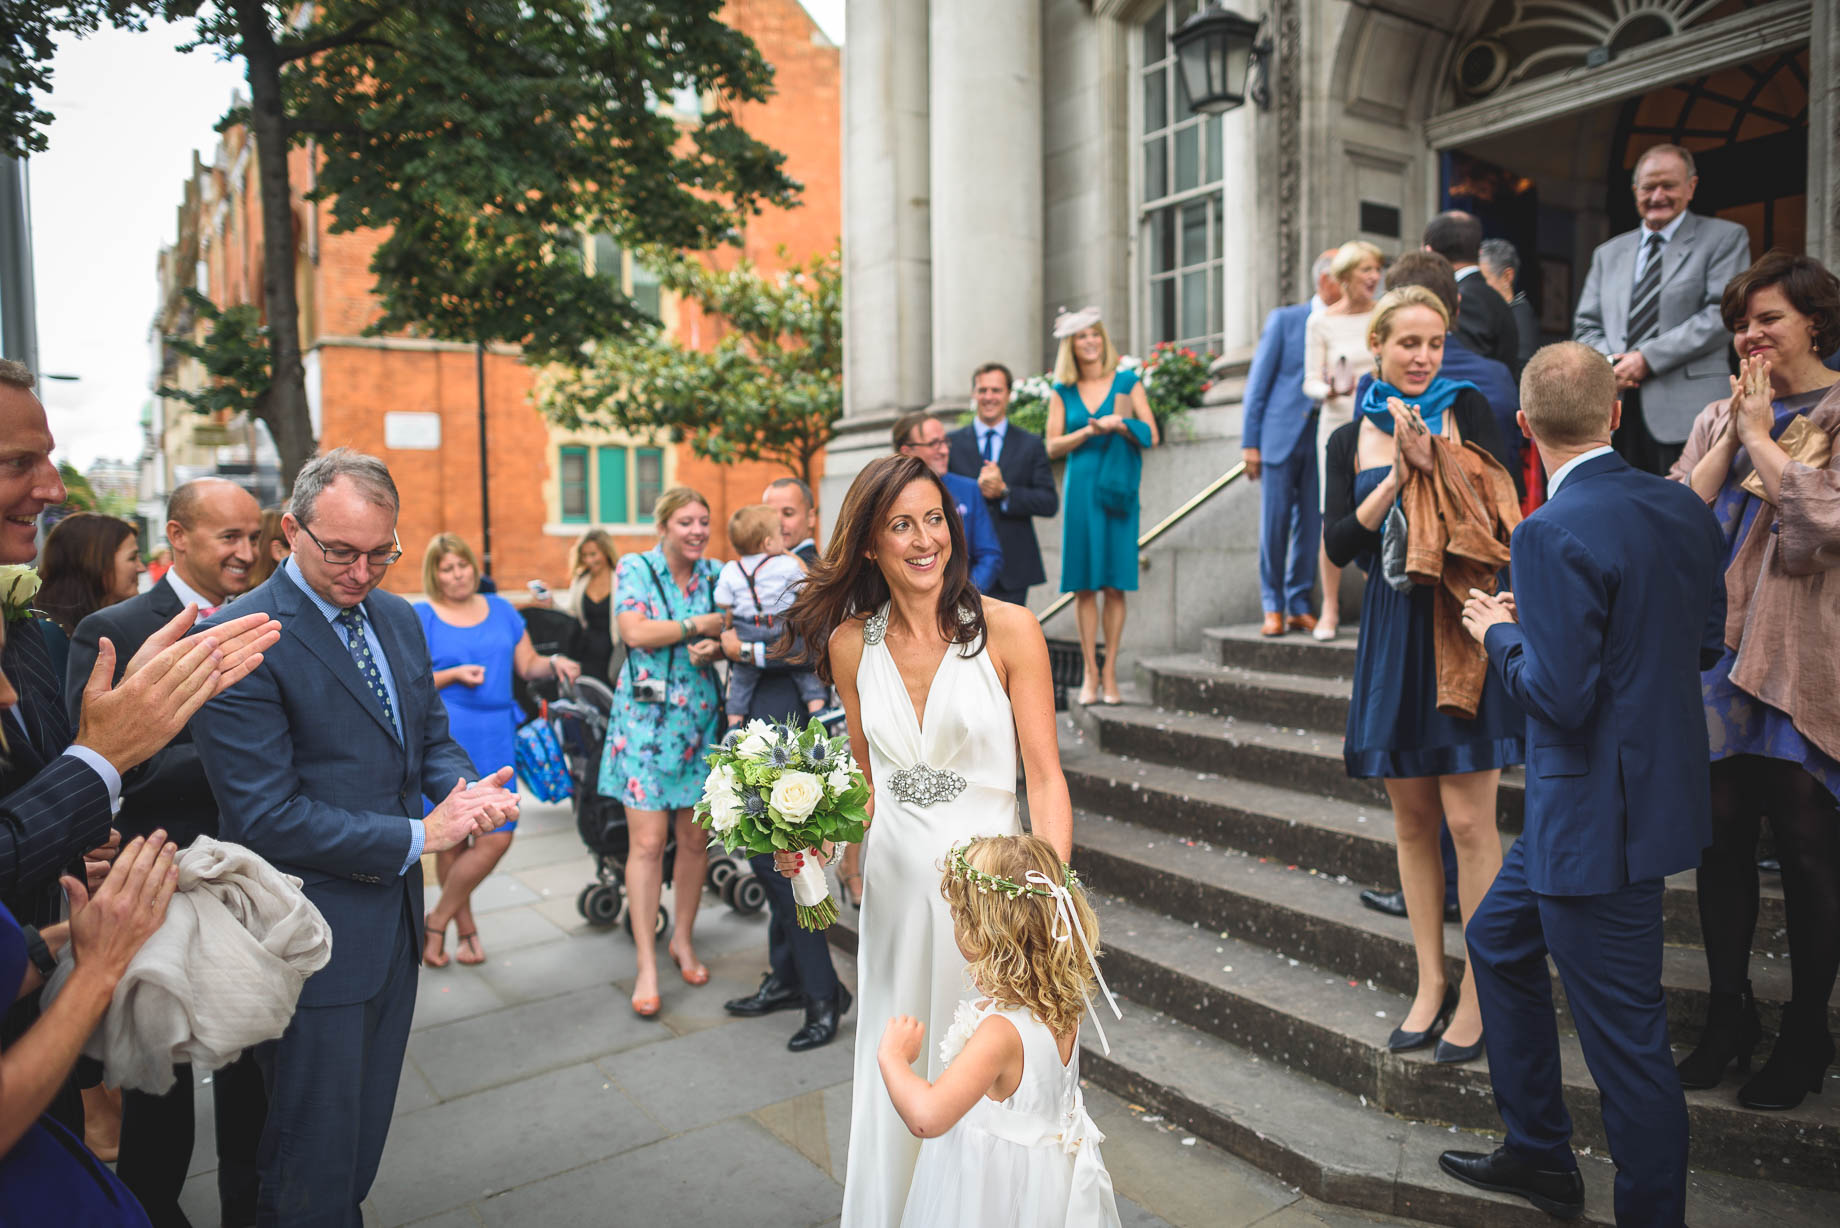 Chelsea and Mayfair wedding photography - Guy Collier - Vicki and Damien (68 of 126)